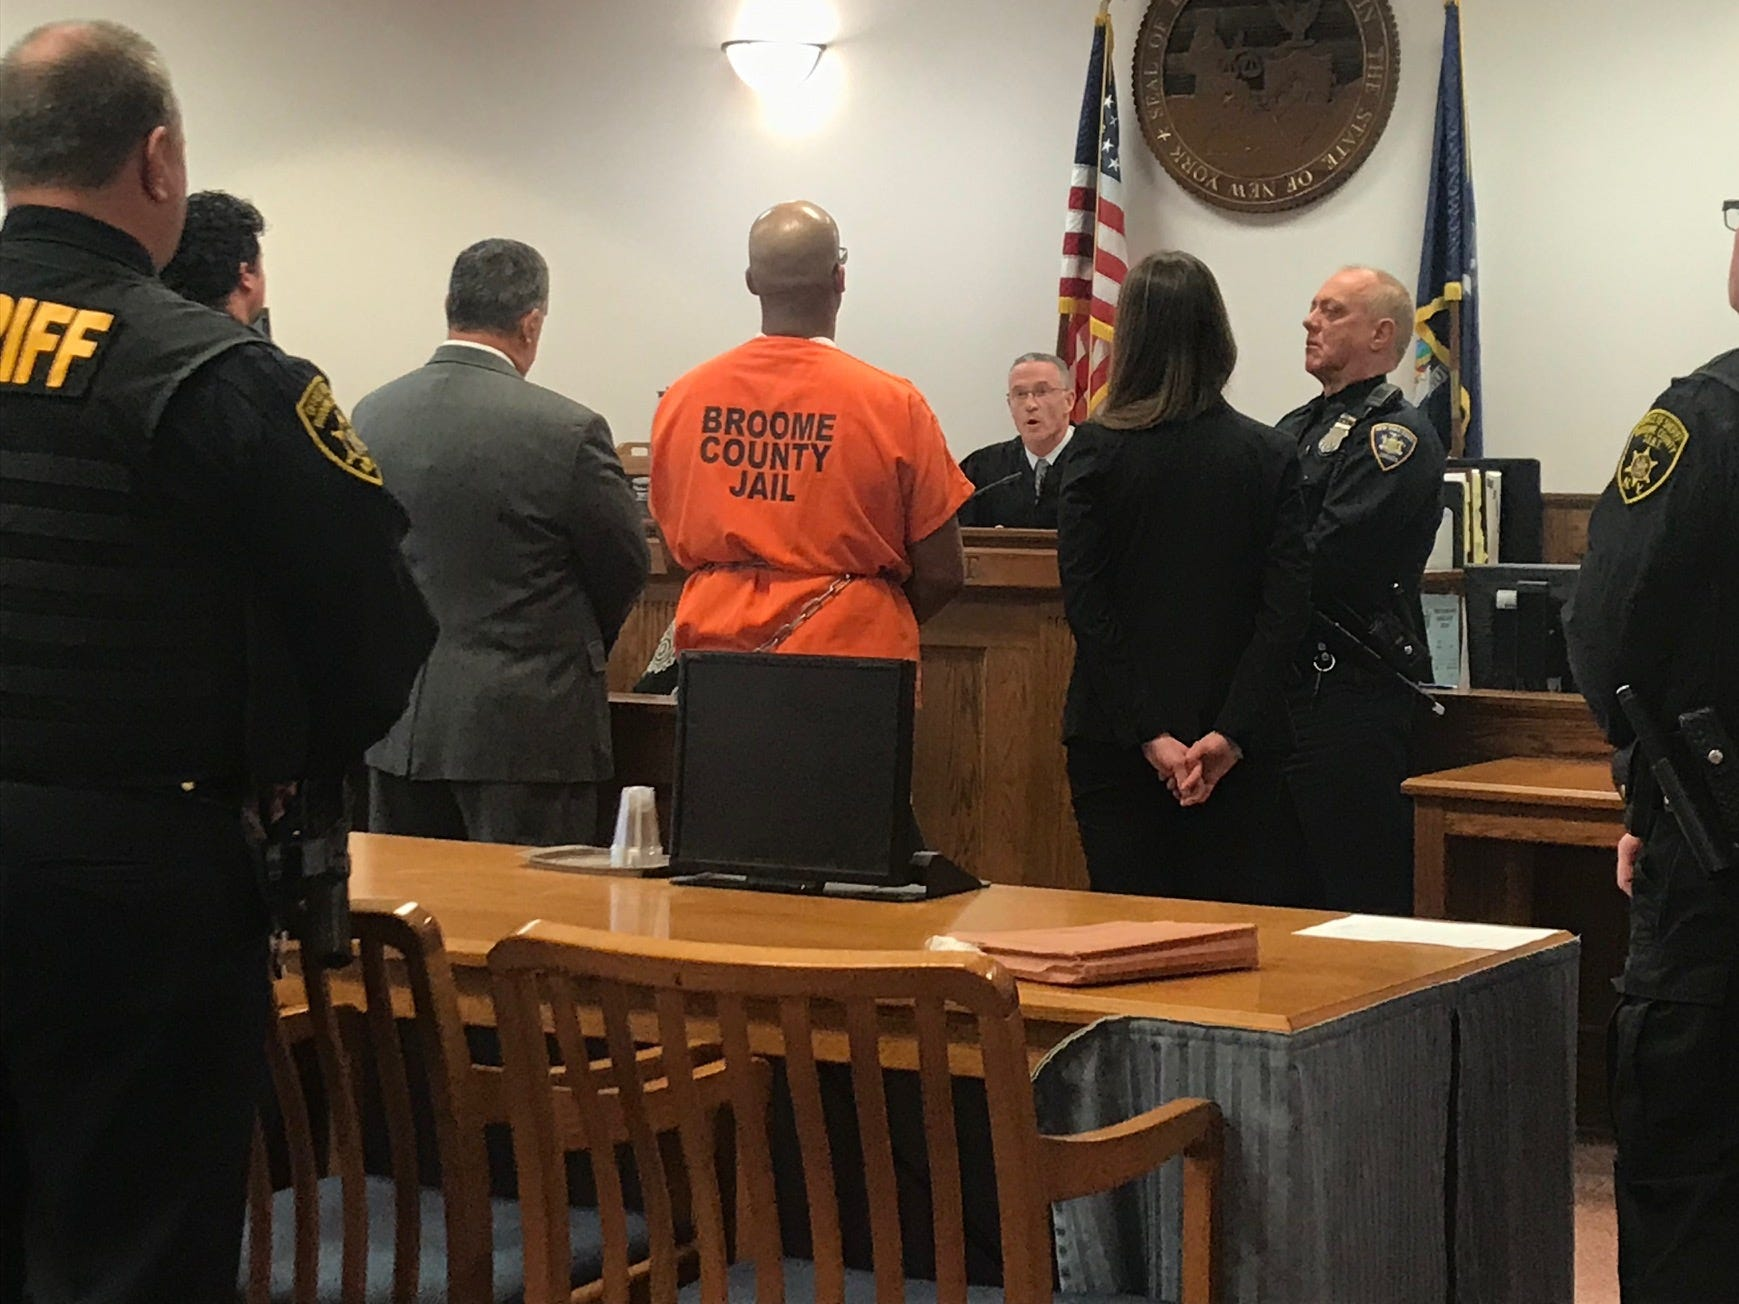 Aaron Powell was sentenced to life without the possibility of parole for the murders of two Town of Binghamton residents in 2013.